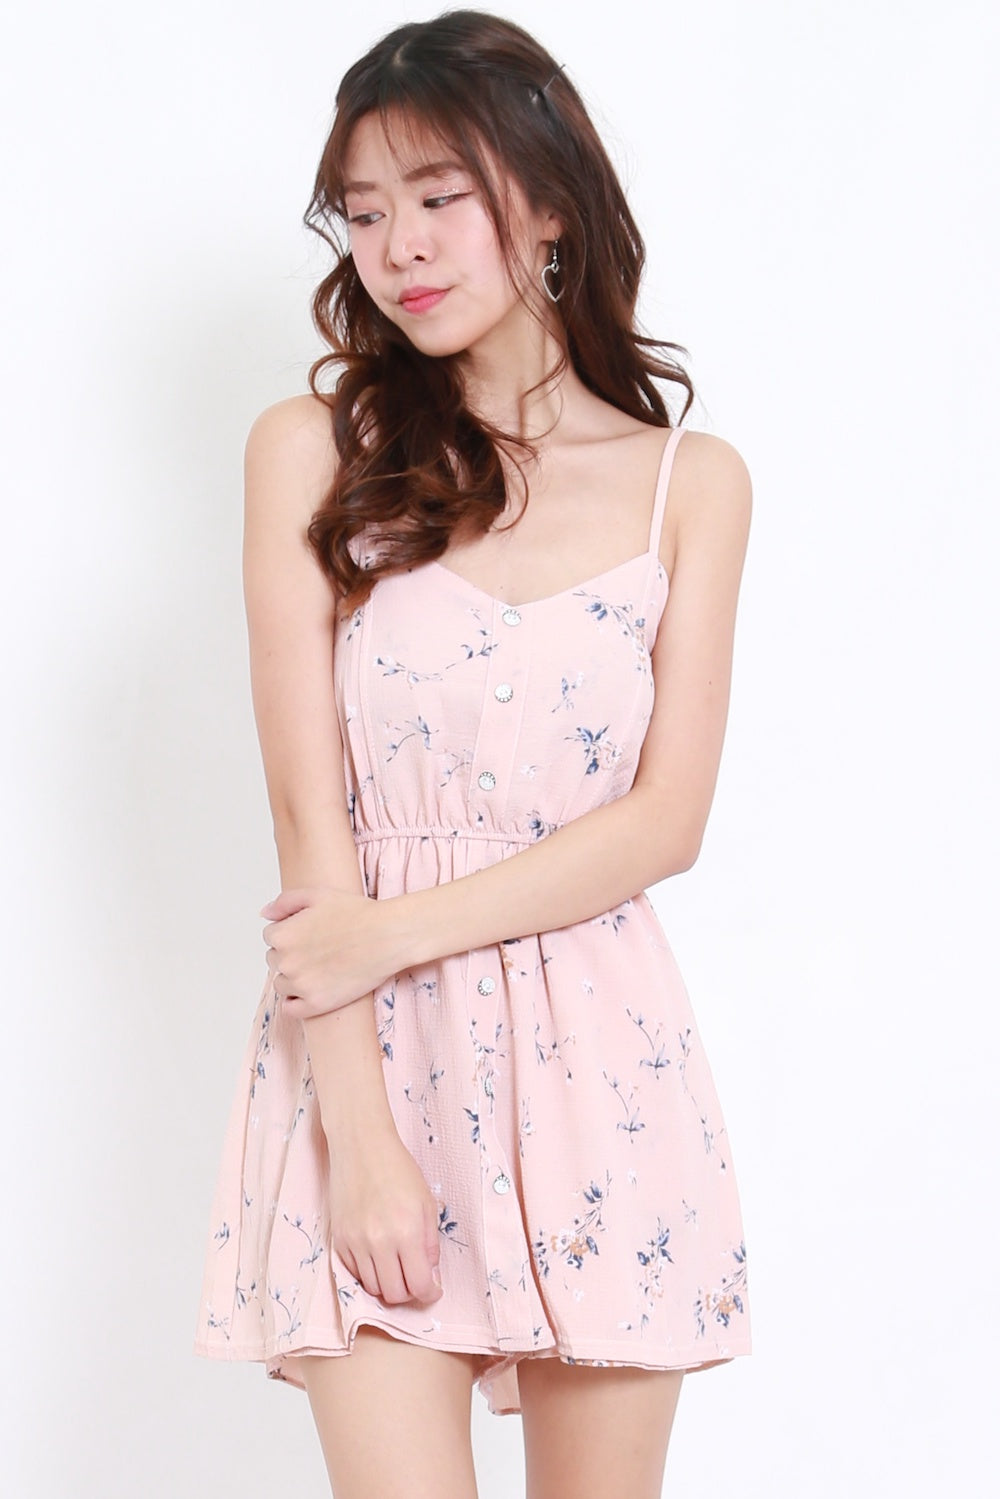 b1b2505244ea Buttons Floral Baby Romper Dress (Pink) – Carrislabelle